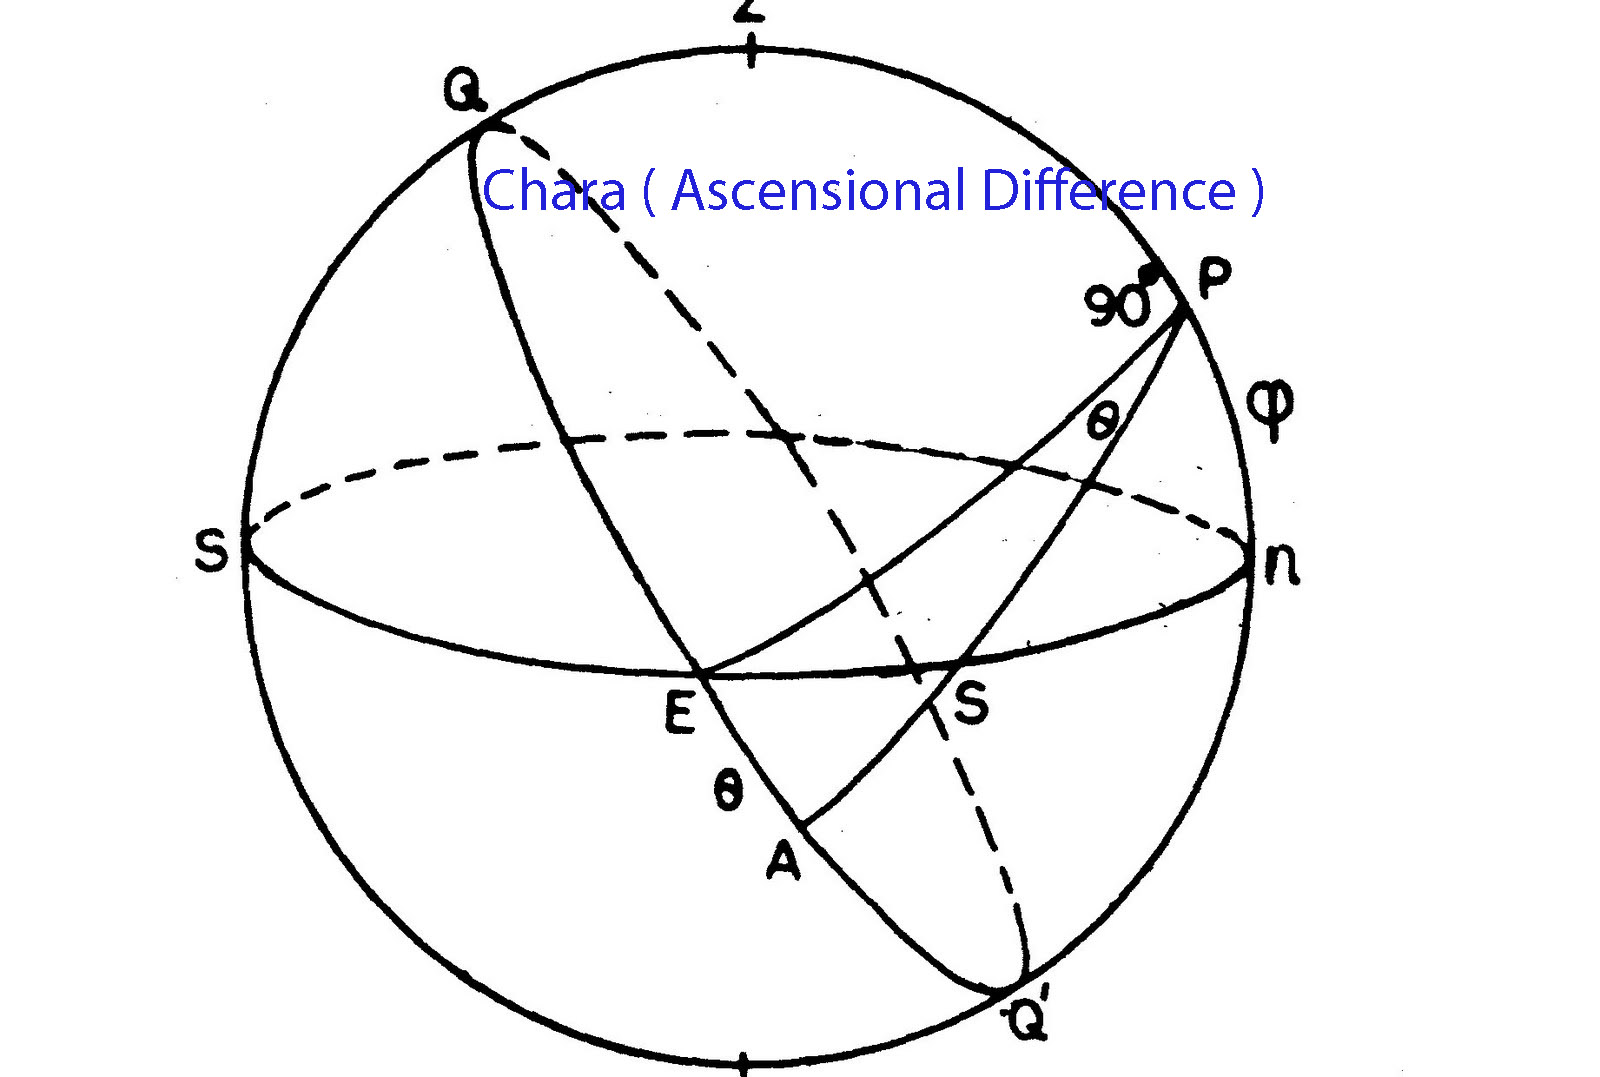 vedic astrology lesson 8.chara, ascensional difference, hindu astrology software, research and consultancy